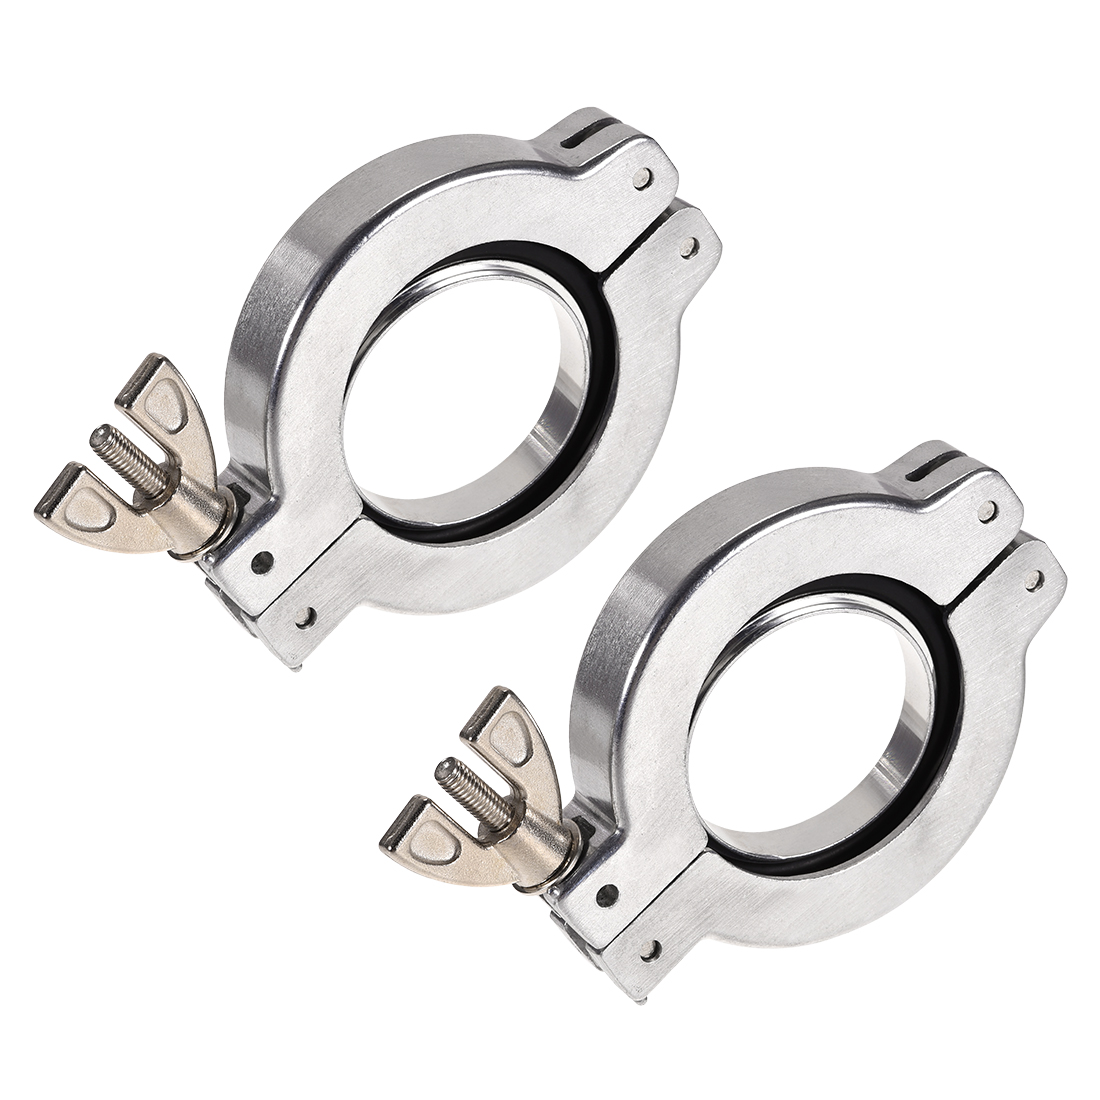 2 Pcs Sanitary -Clamp 68mm x 46mm KF40 Clamp Wing Nut w Center Ring